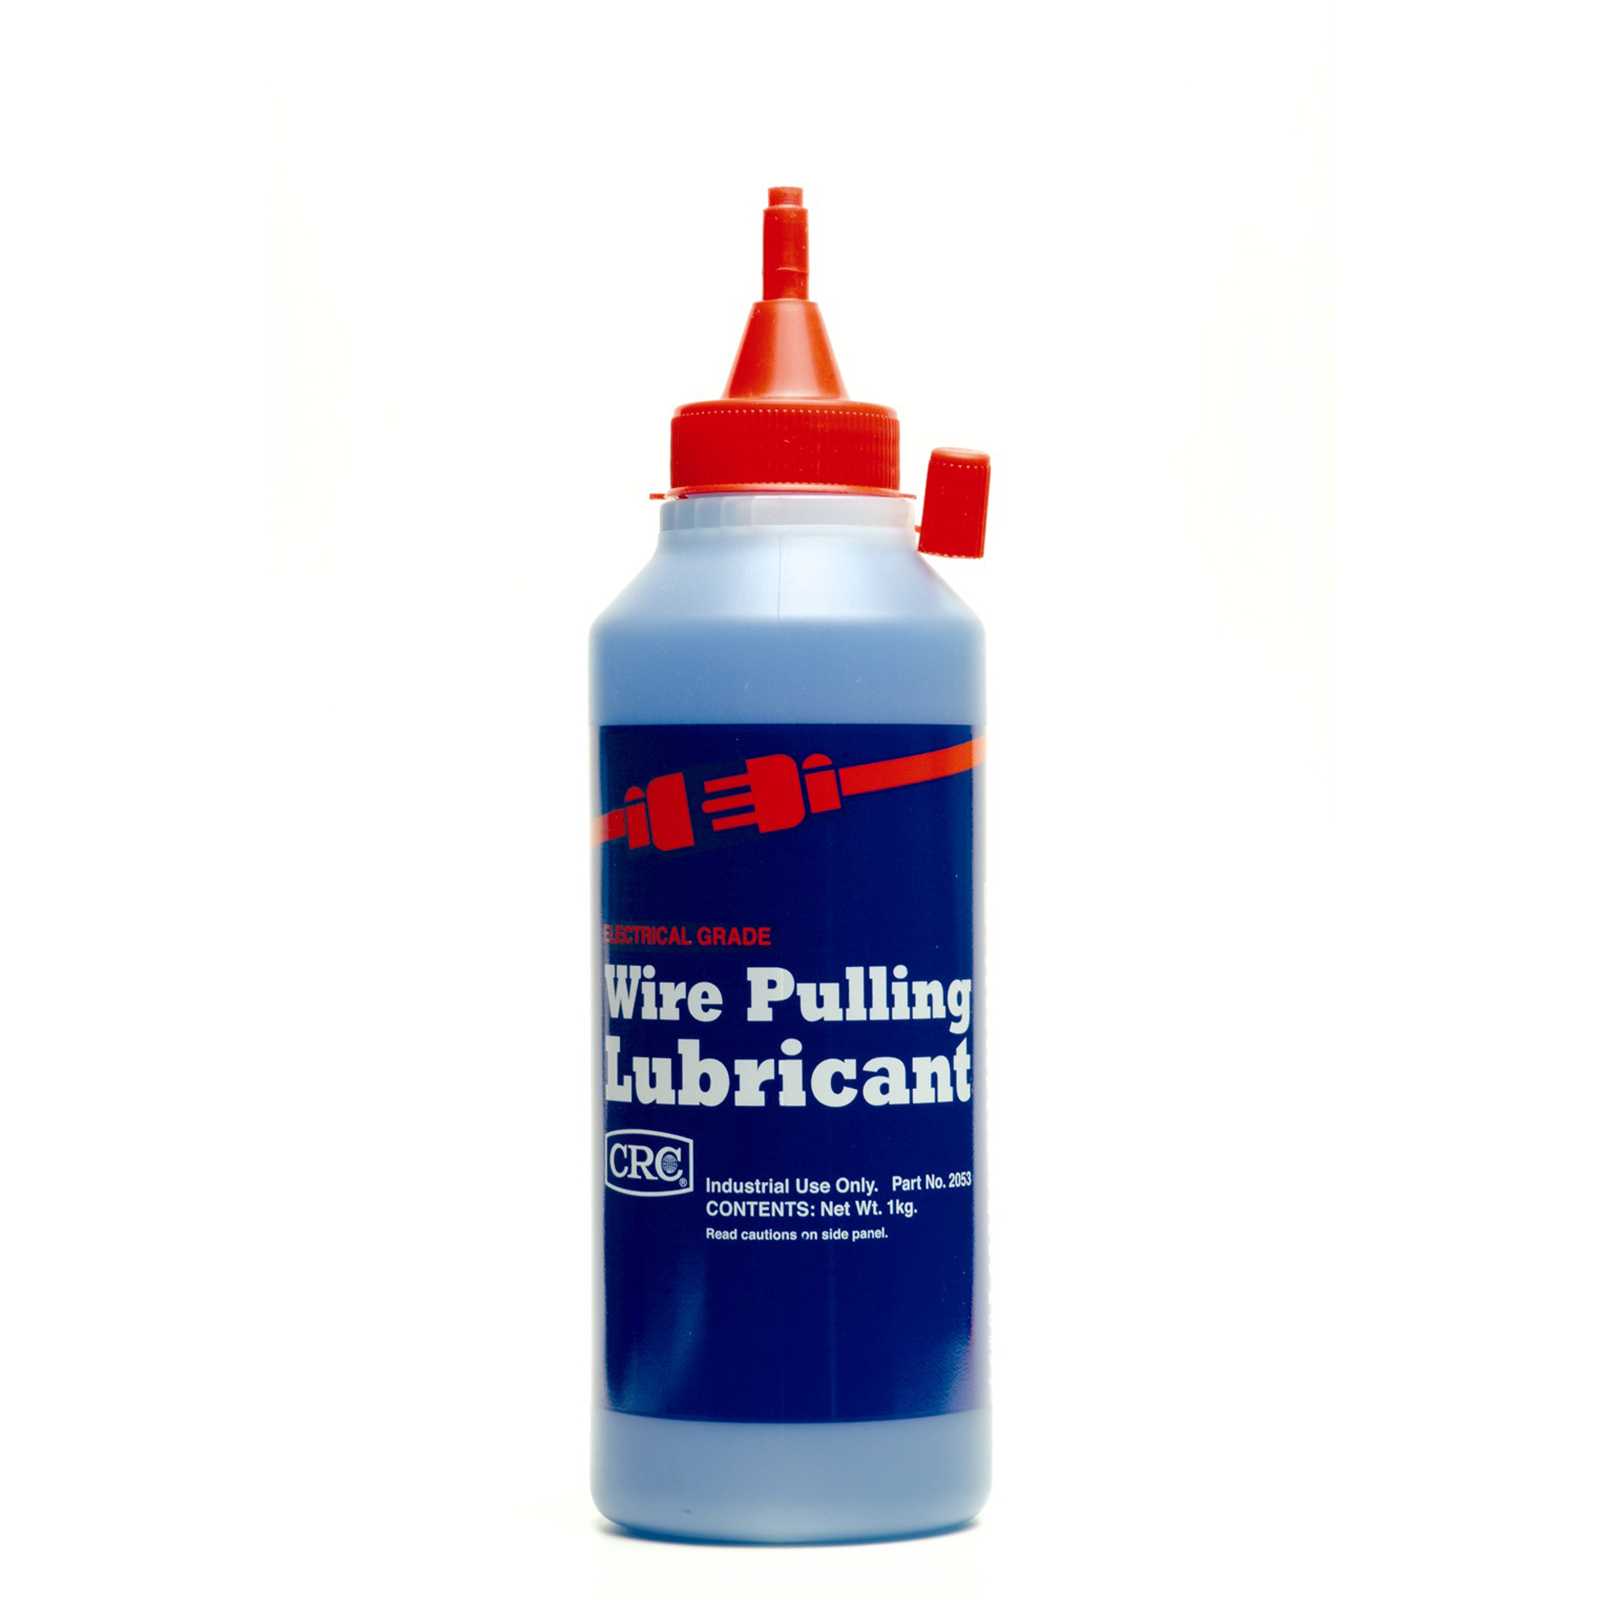 Wire Pulling Lube